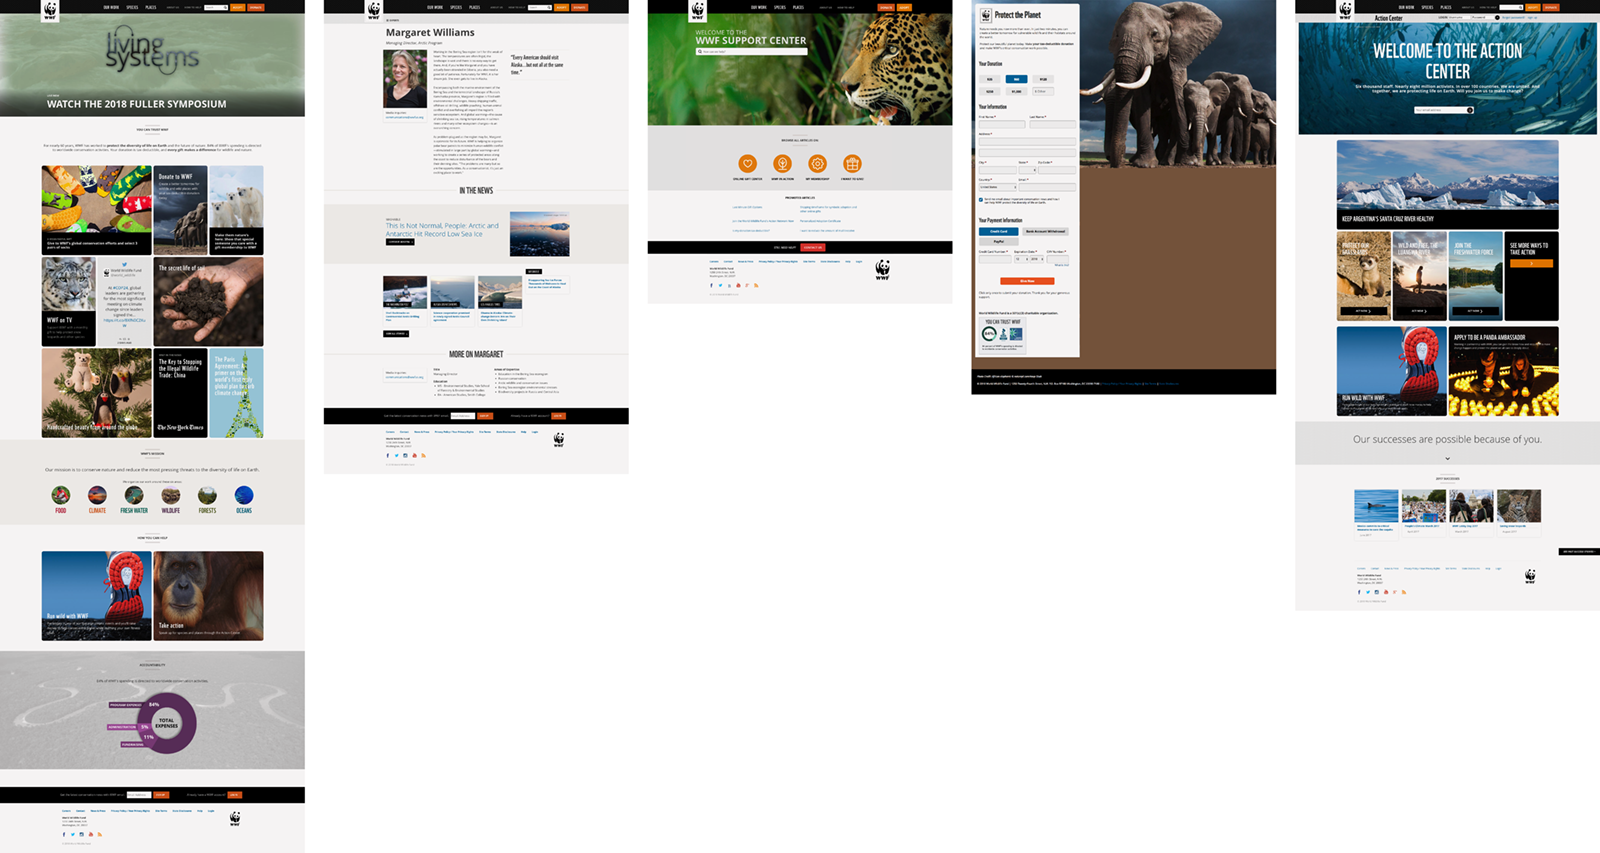 worldwildlife.org is a good website design example for its strategic content organization